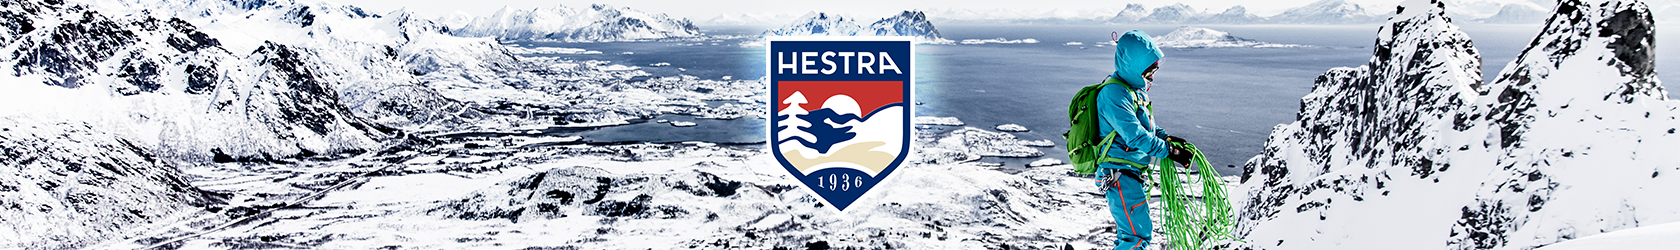 A person, wearing Hestra gloves, is preparing to climb snow mountains.